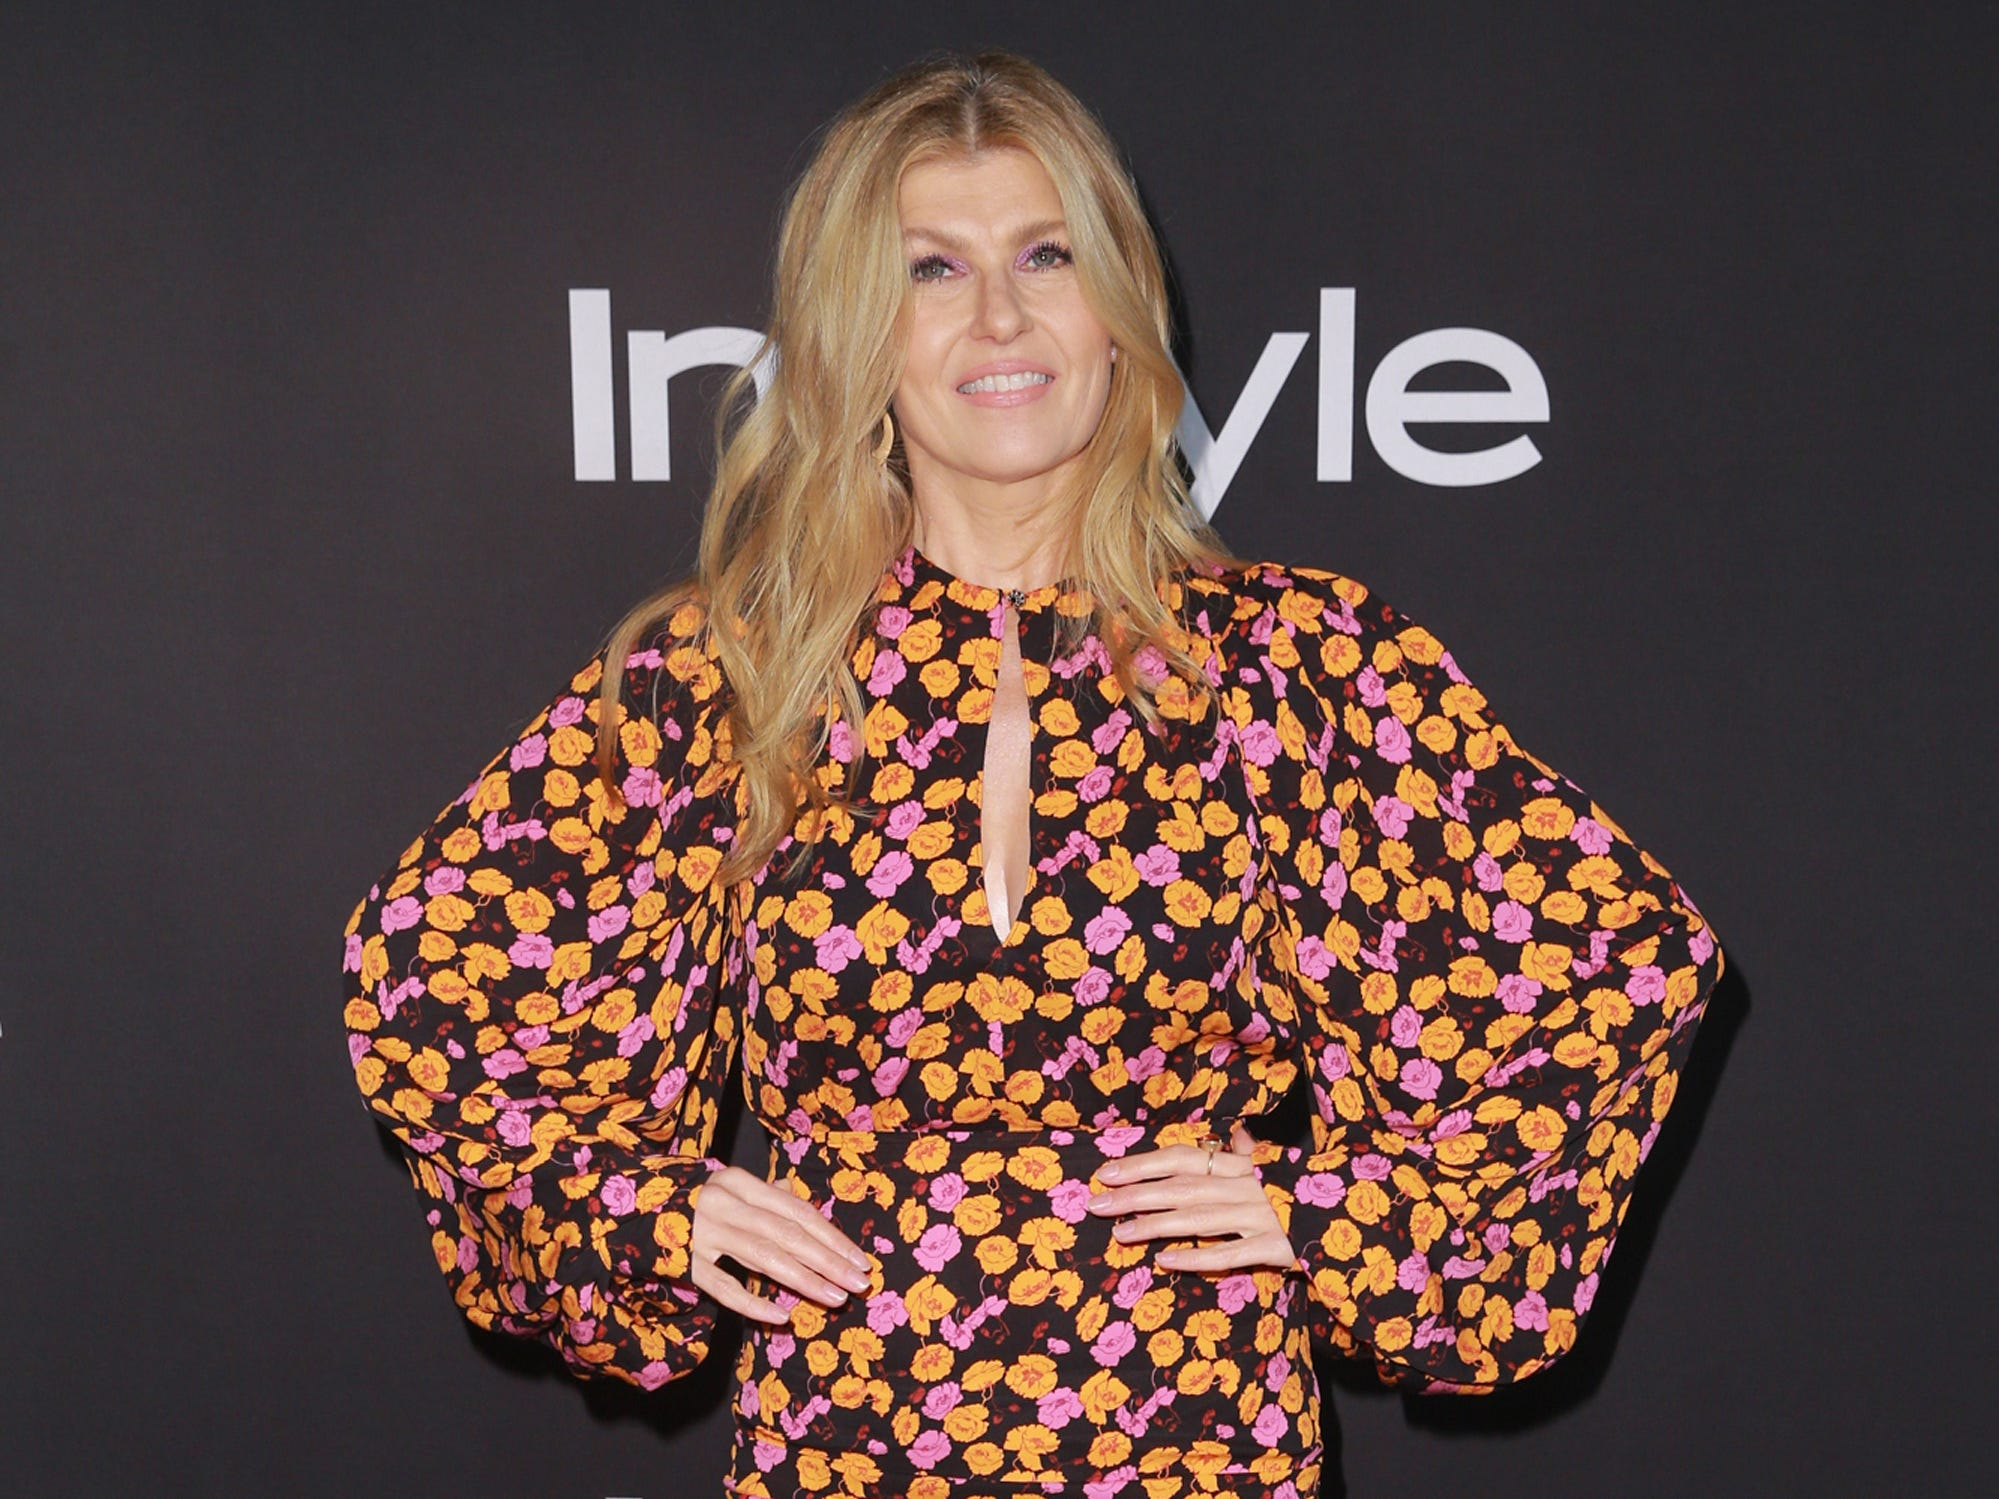 LOS ANGELES, CA - OCTOBER 22:  Connie Britton attends the 2018 InStyle Awards at The Getty Center on October 22, 2018 in Los Angeles, California.  (Photo by Rich Fury/Getty Images) ORG XMIT: 775236597 ORIG FILE ID: 1052792882